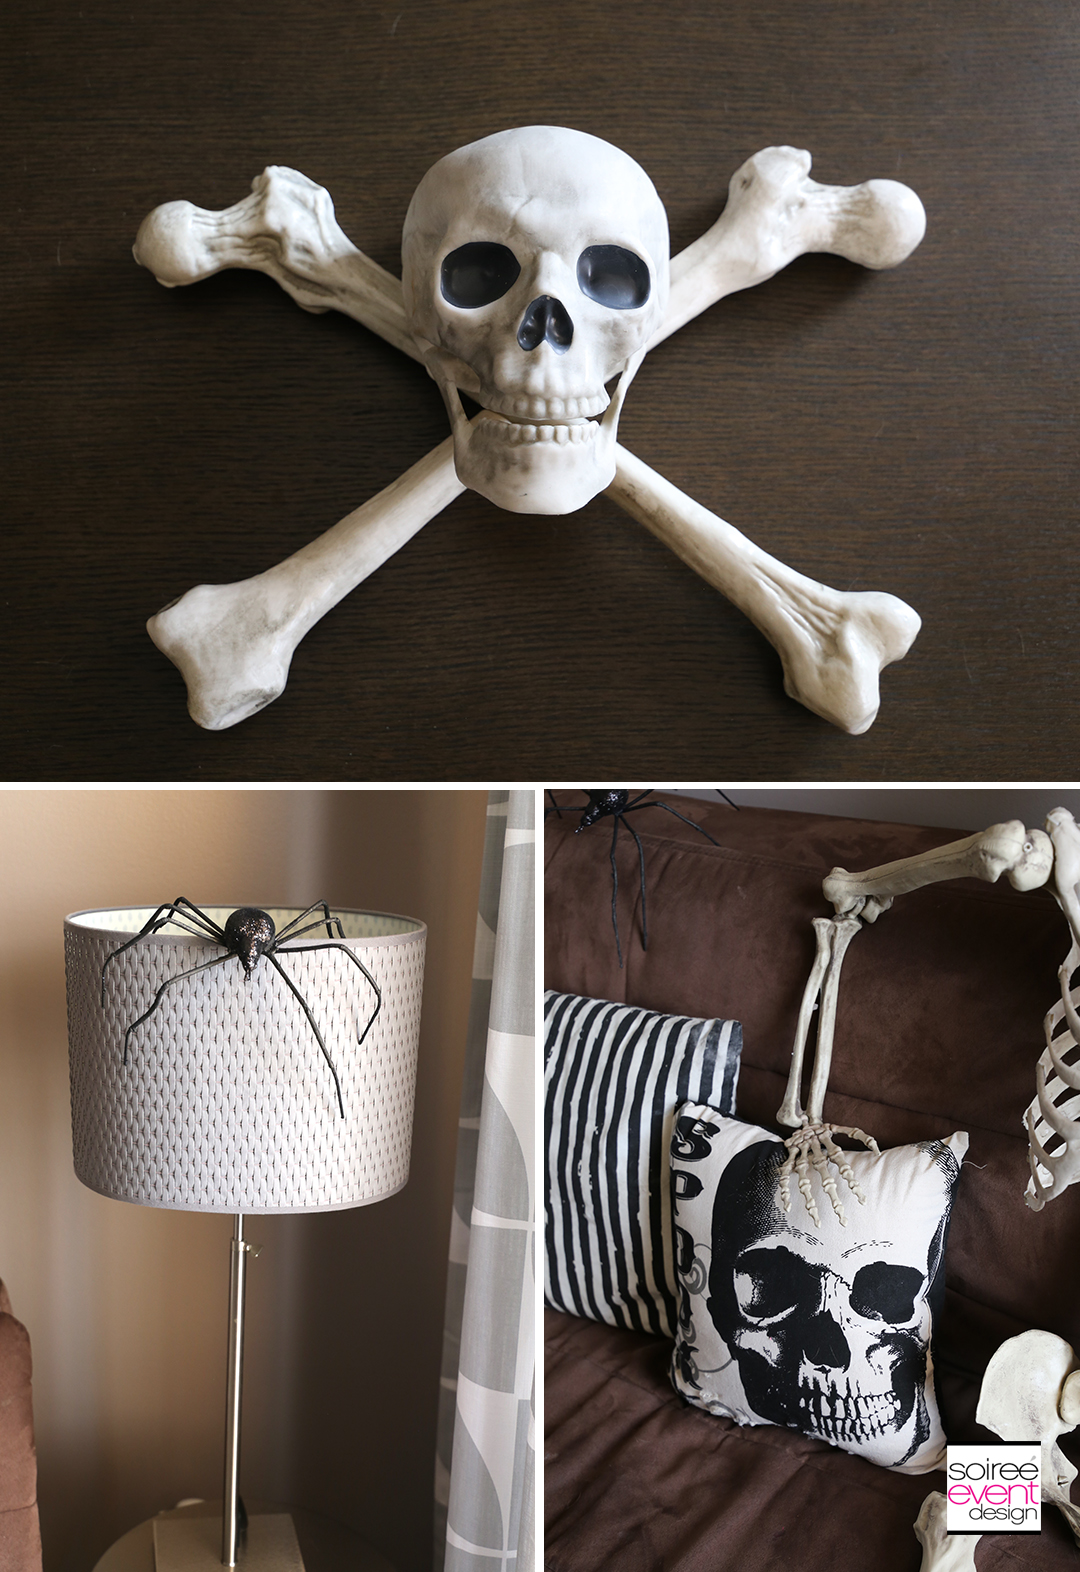 Vintage Halloween Decorating Ideas - Crossbones